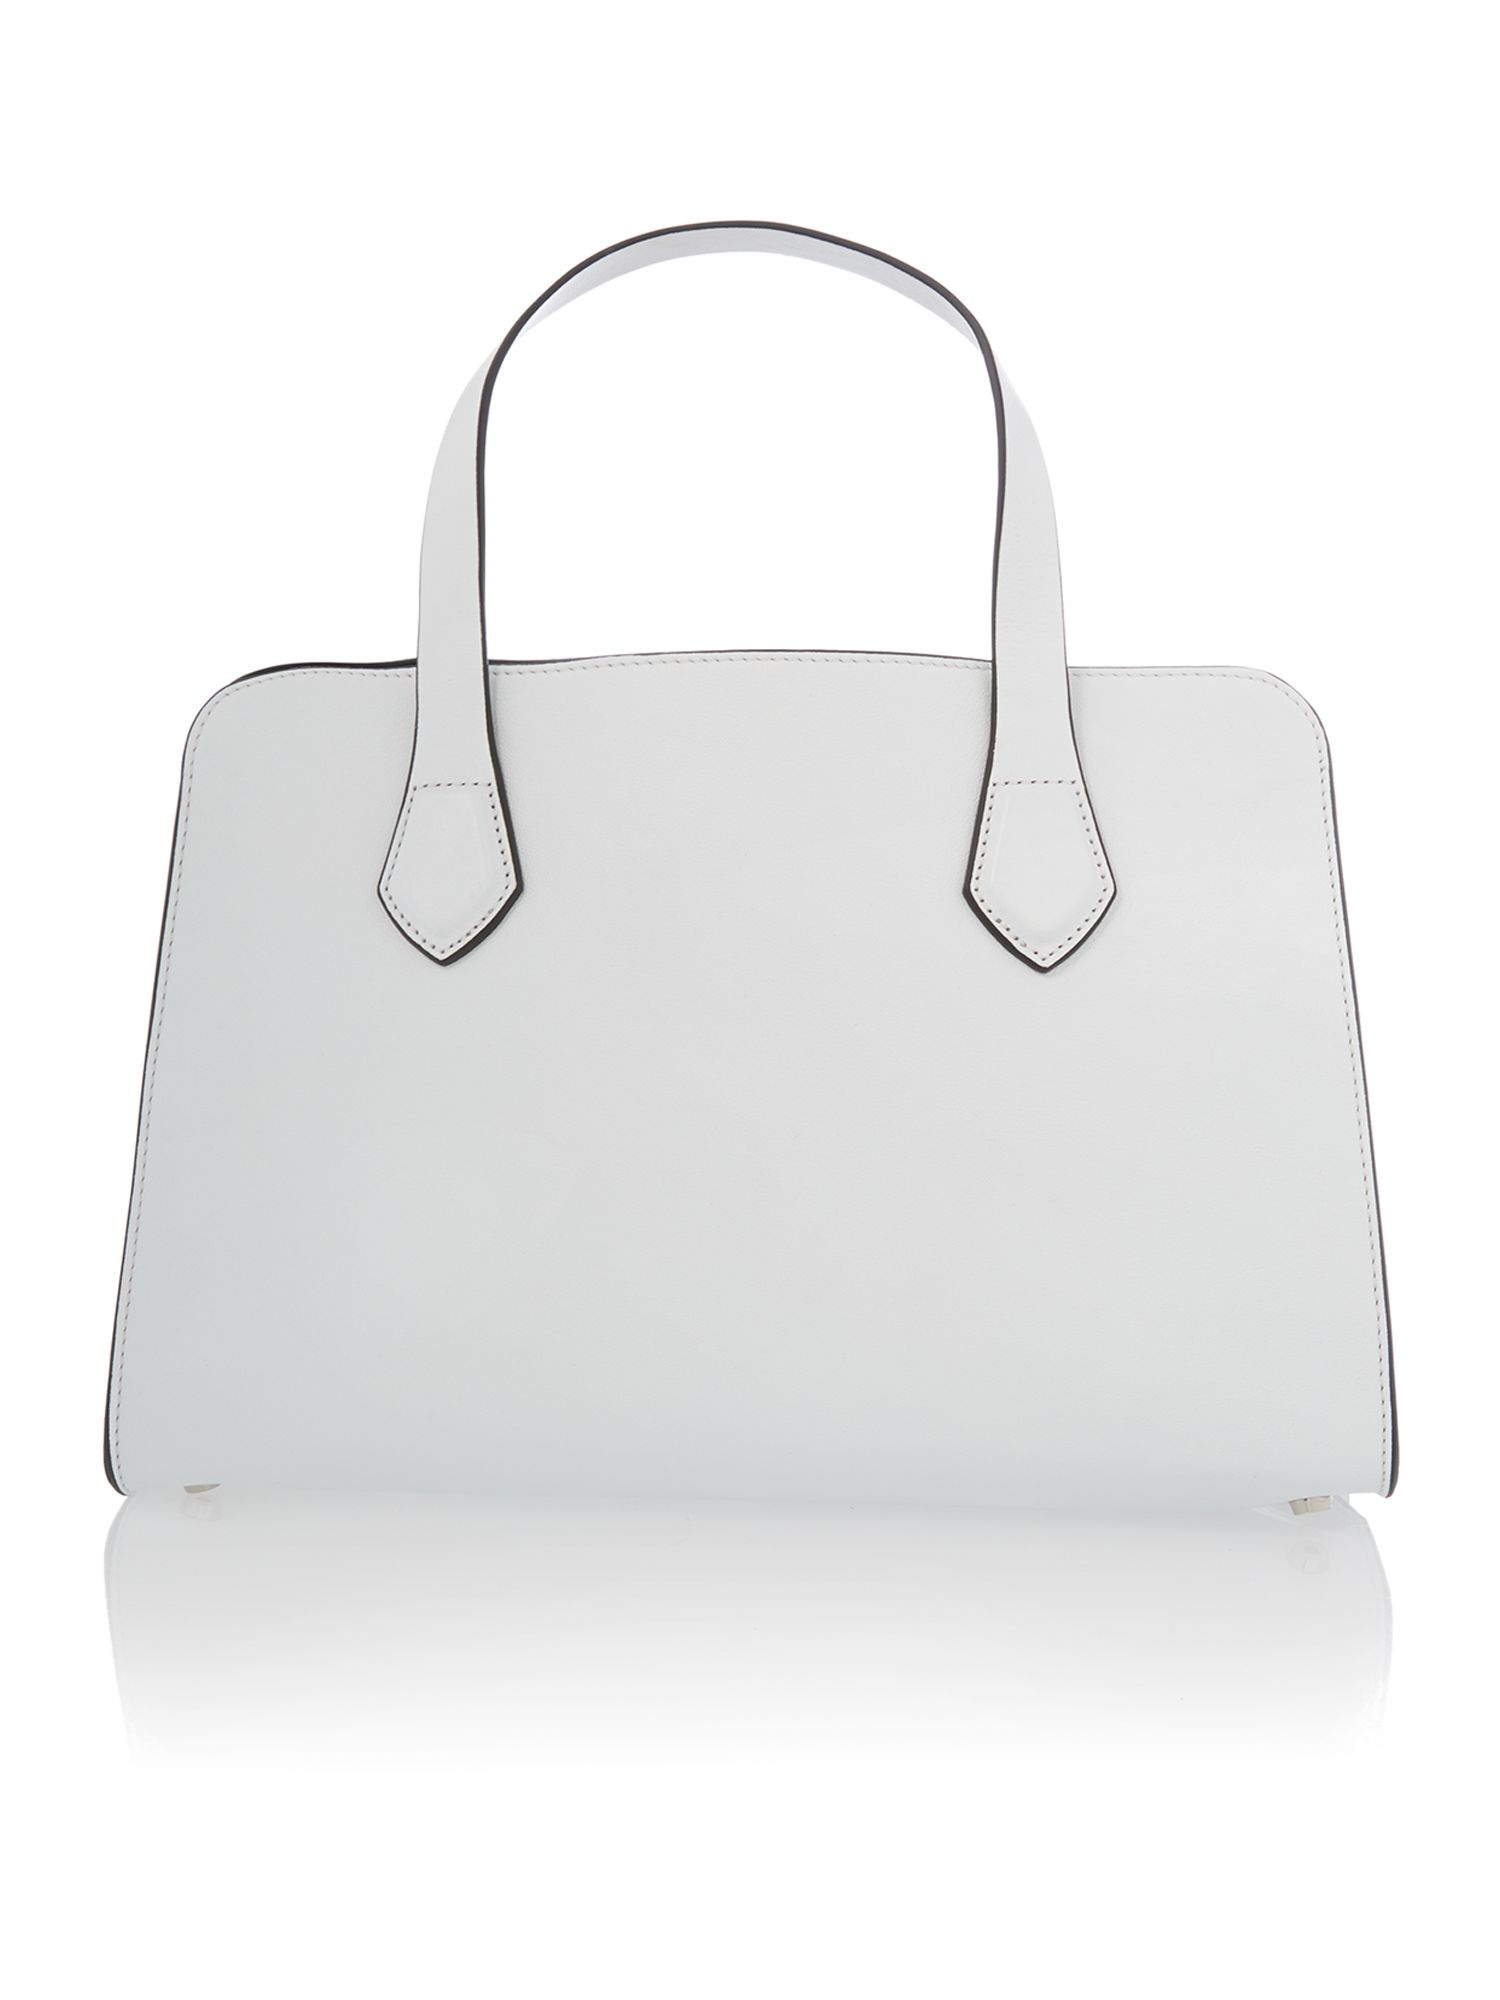 Moon white small tote bag with studs